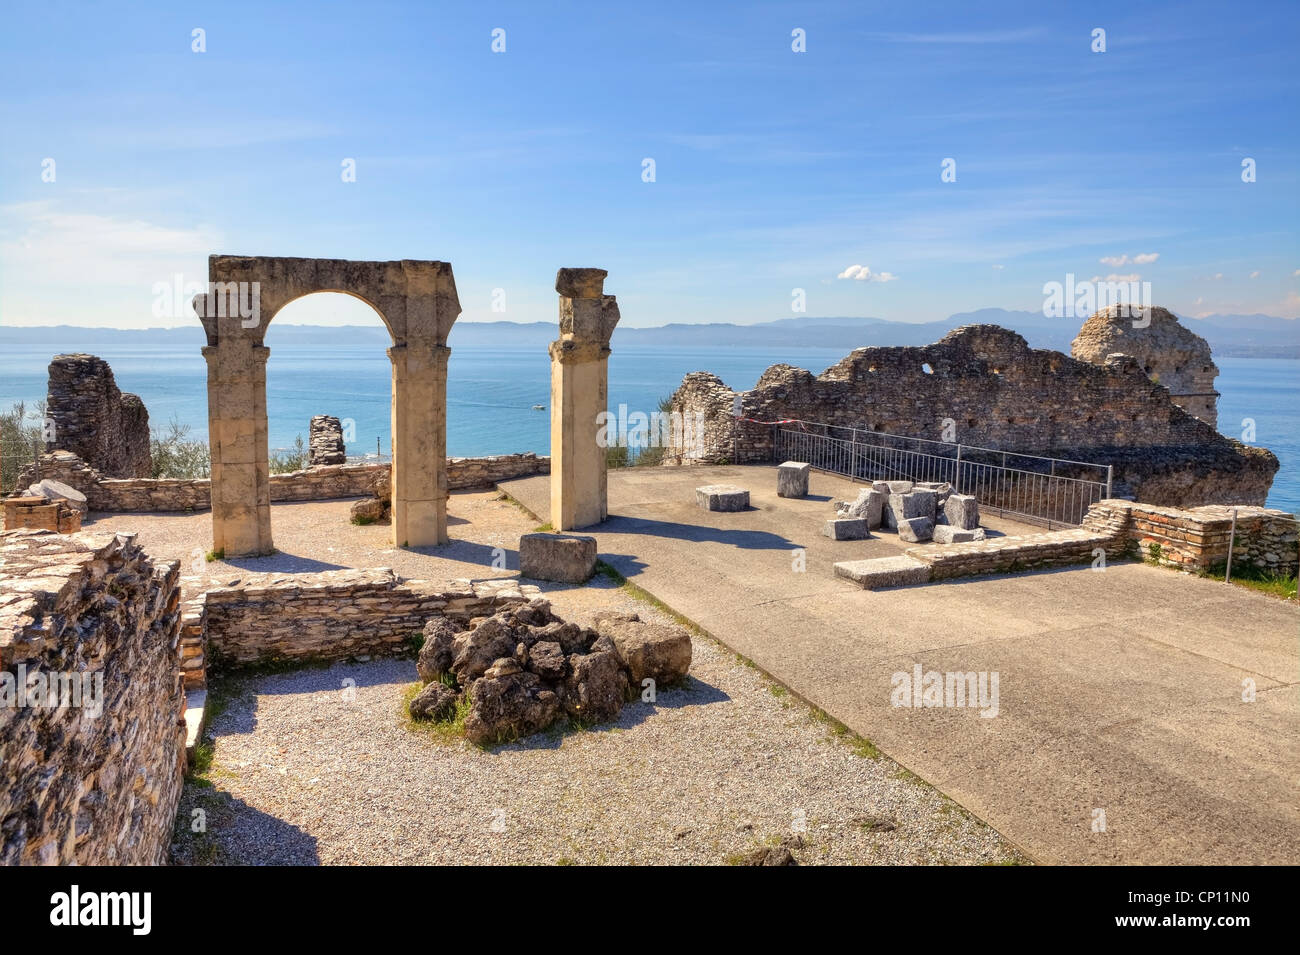 Grottoes of Catullus, Roman villa, Sirmione, Lombardy, Italy Stock Photo